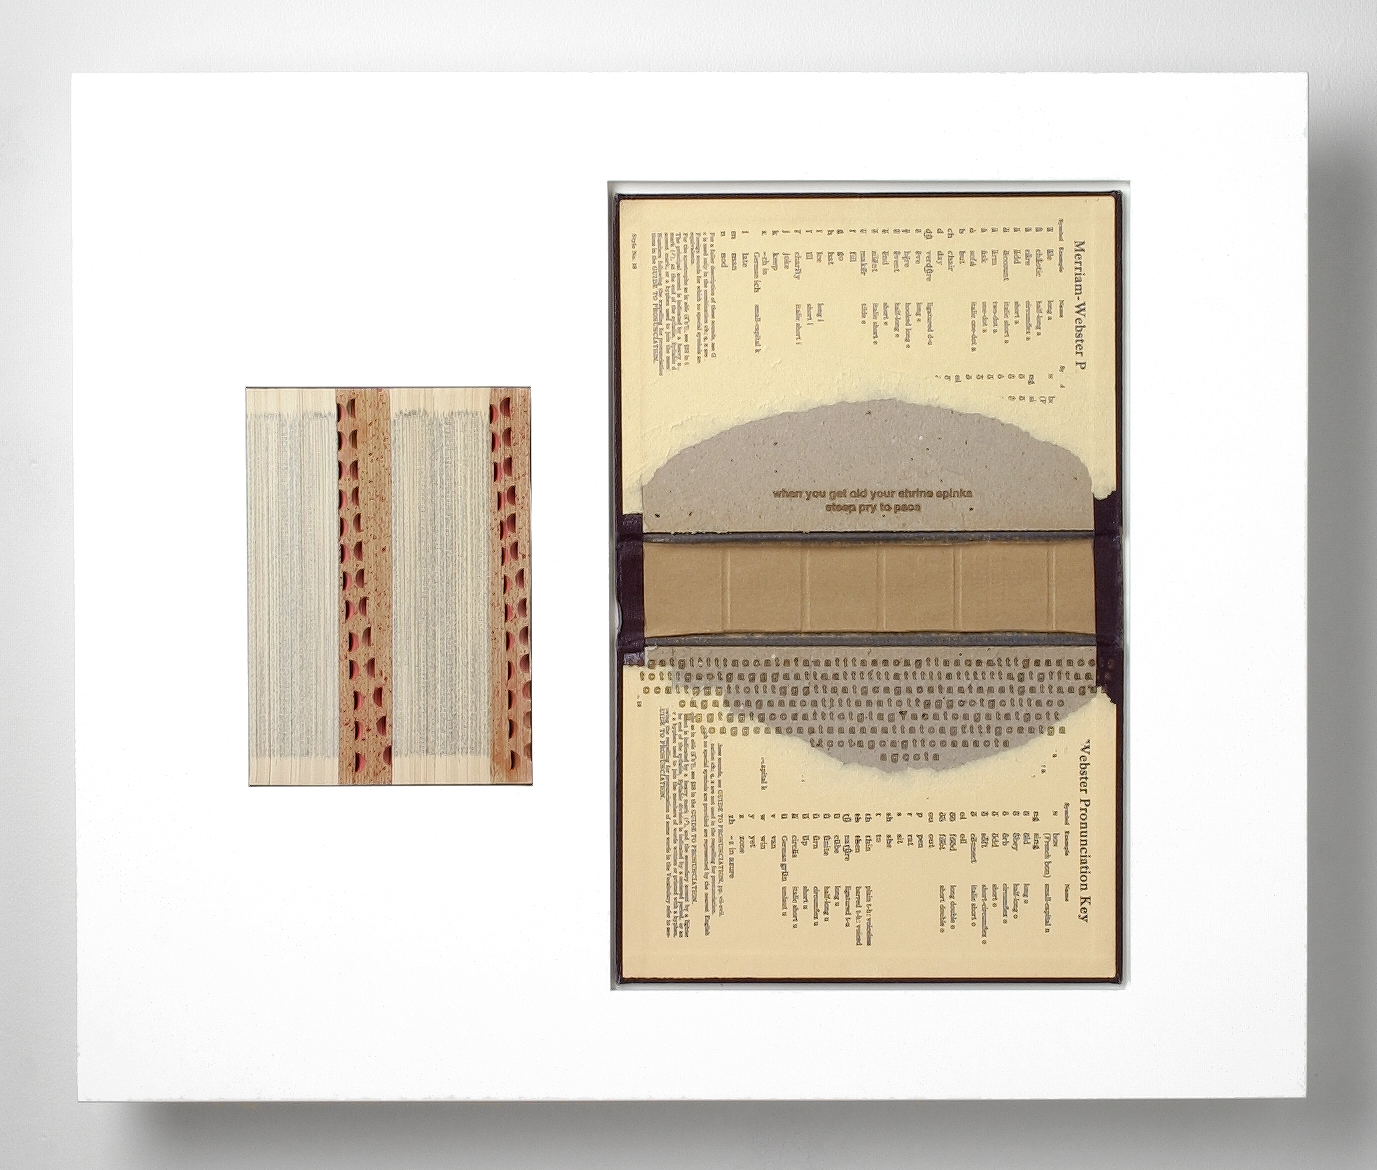 SNPs/slips (18) , laser engraved dictionary cover, pages, in lacquered frame, 20 x 24 x 2.75 inches, 2003